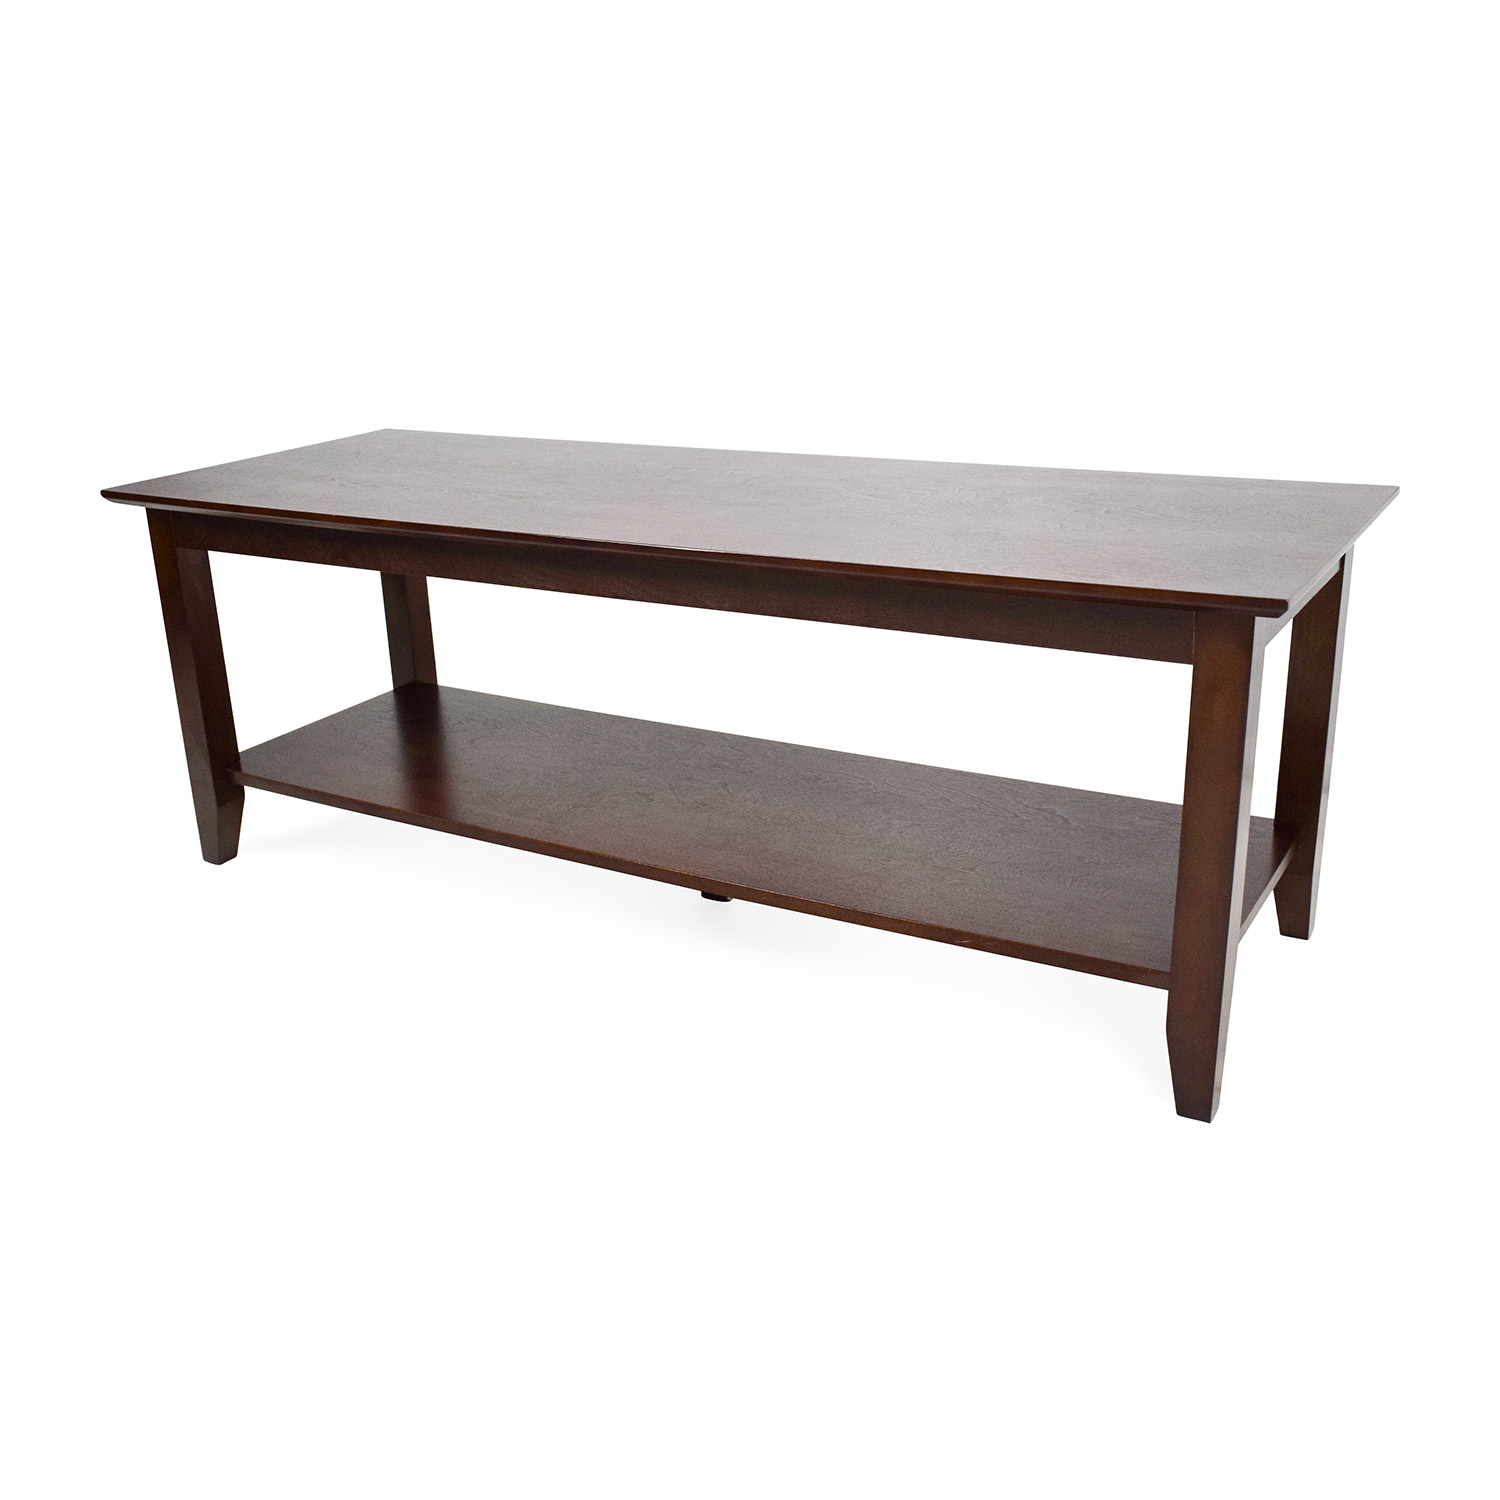 59 Off Natural Wood Coffee Table Tables